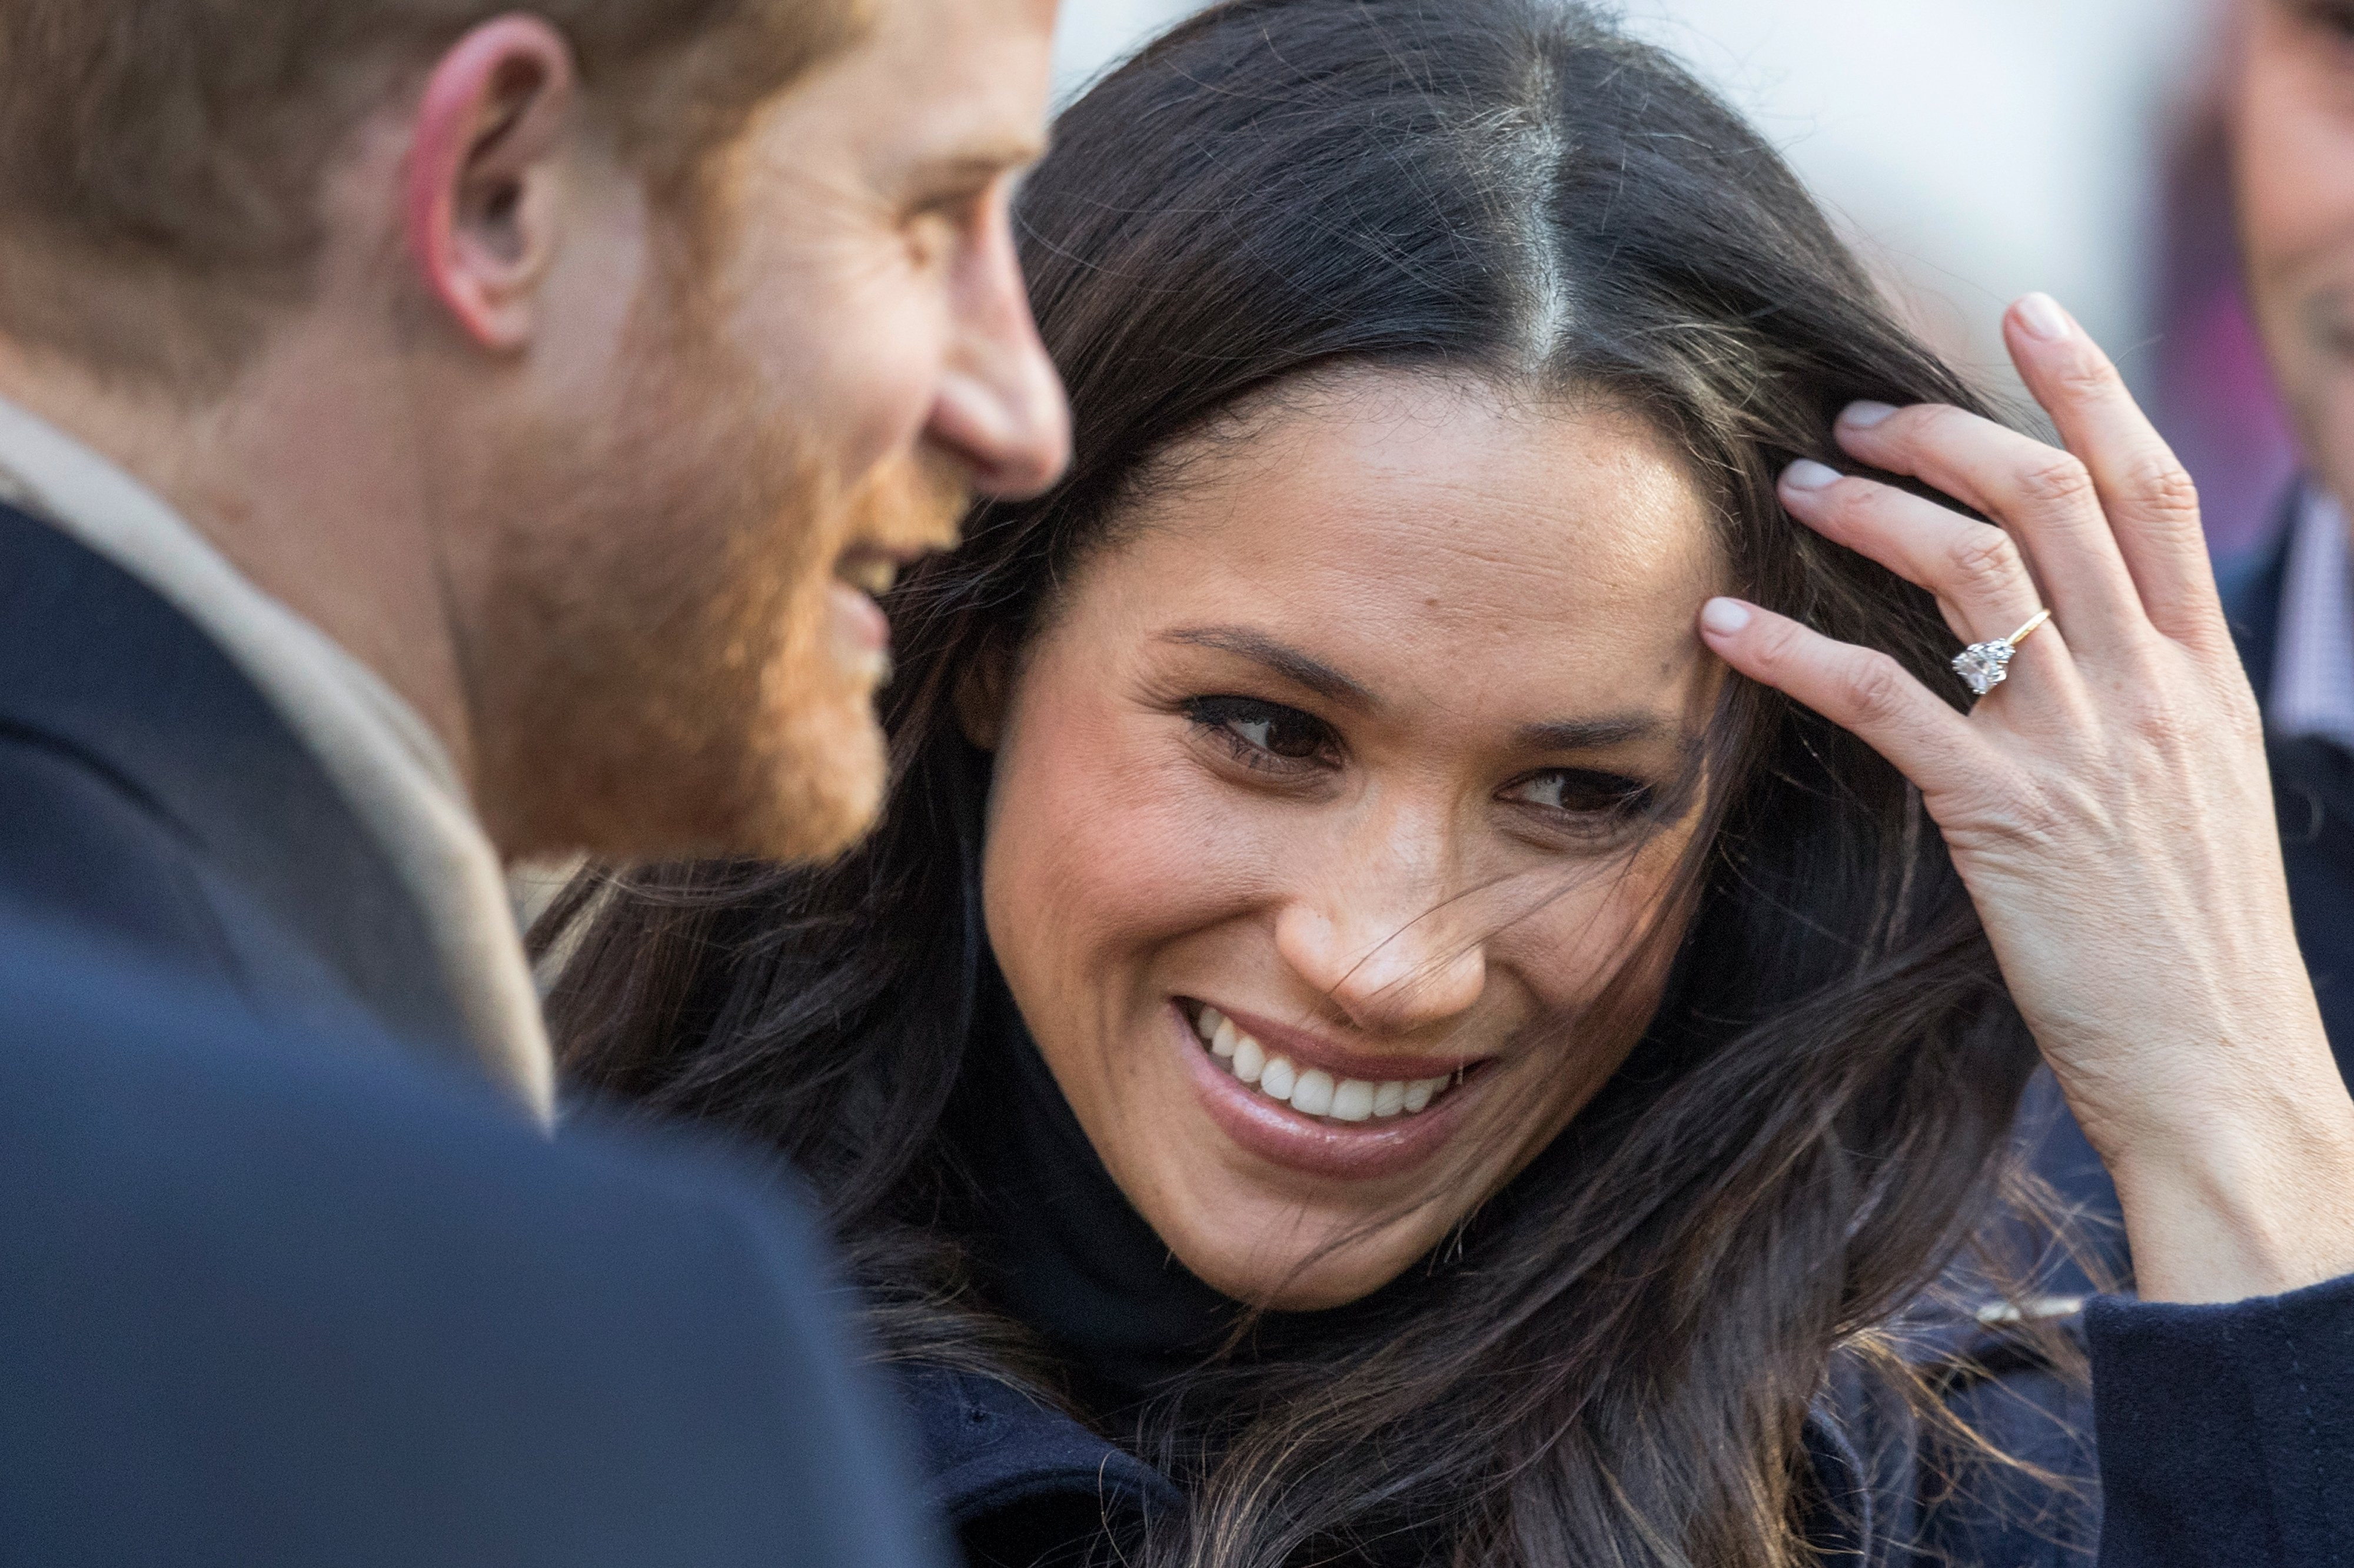 Meghan Markle and Prince Harry. | Source: Getty Images